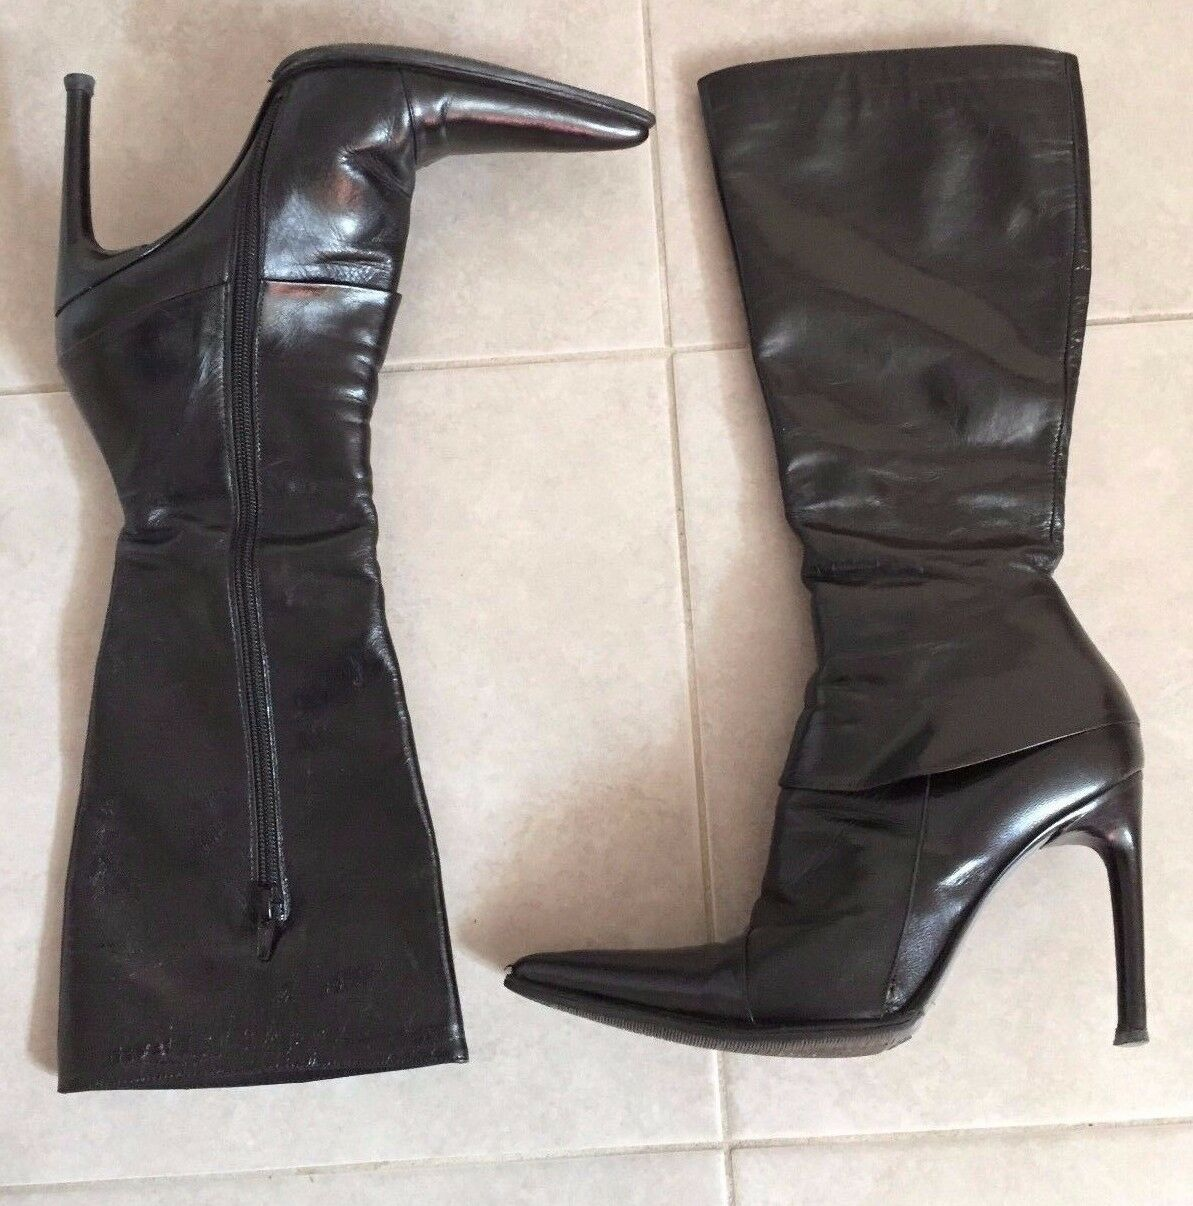 Chuckies Brand  Women's Black Pointy Stiletto Leather Boots Size 7